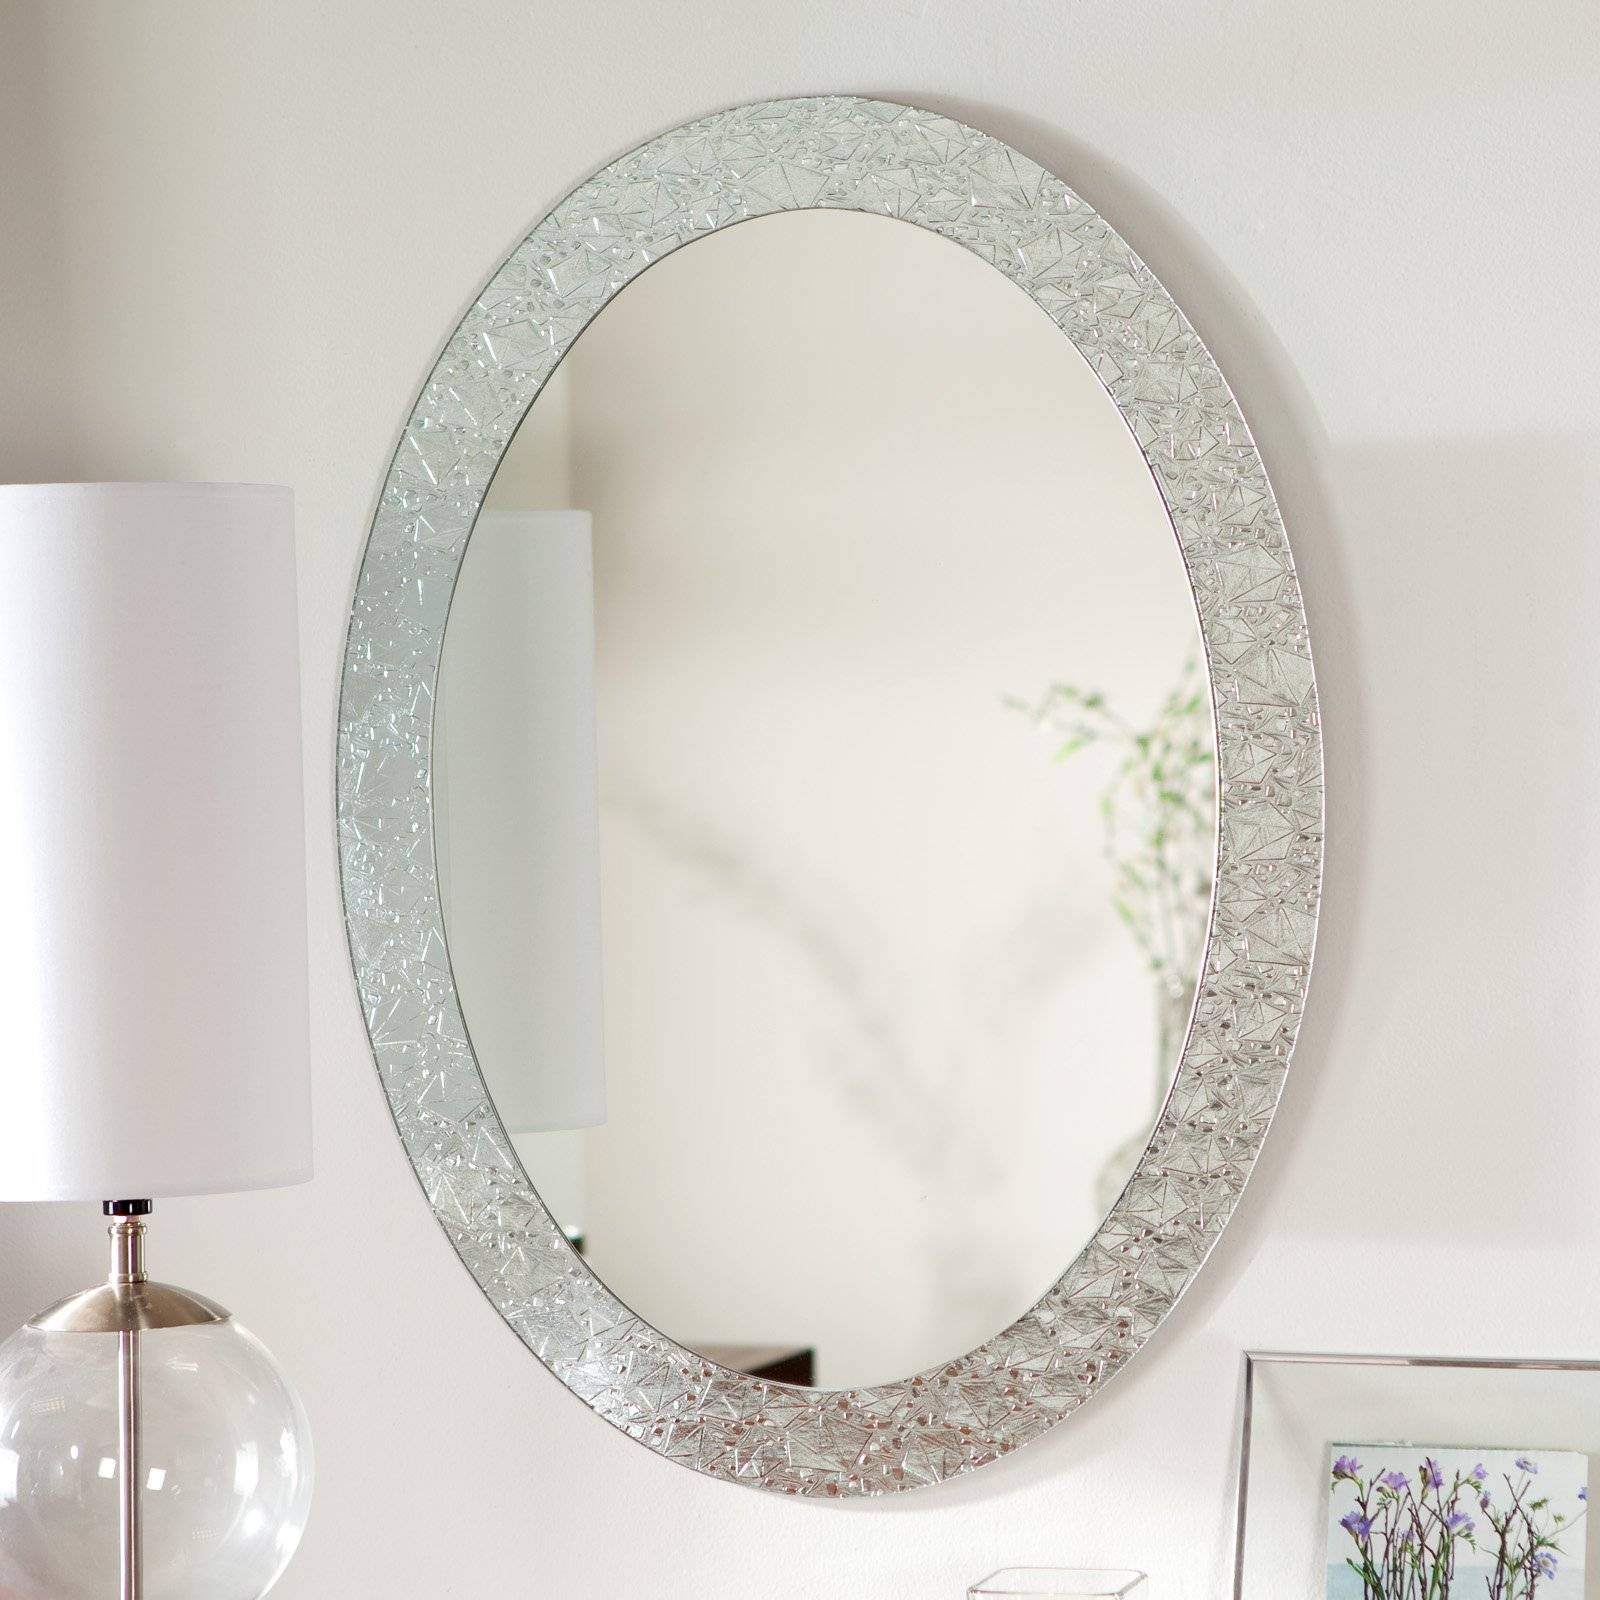 Frameless Full Length Wall Mirror 131 Enchanting Ideas With Small regarding Small Ornate Mirrors (Image 11 of 25)